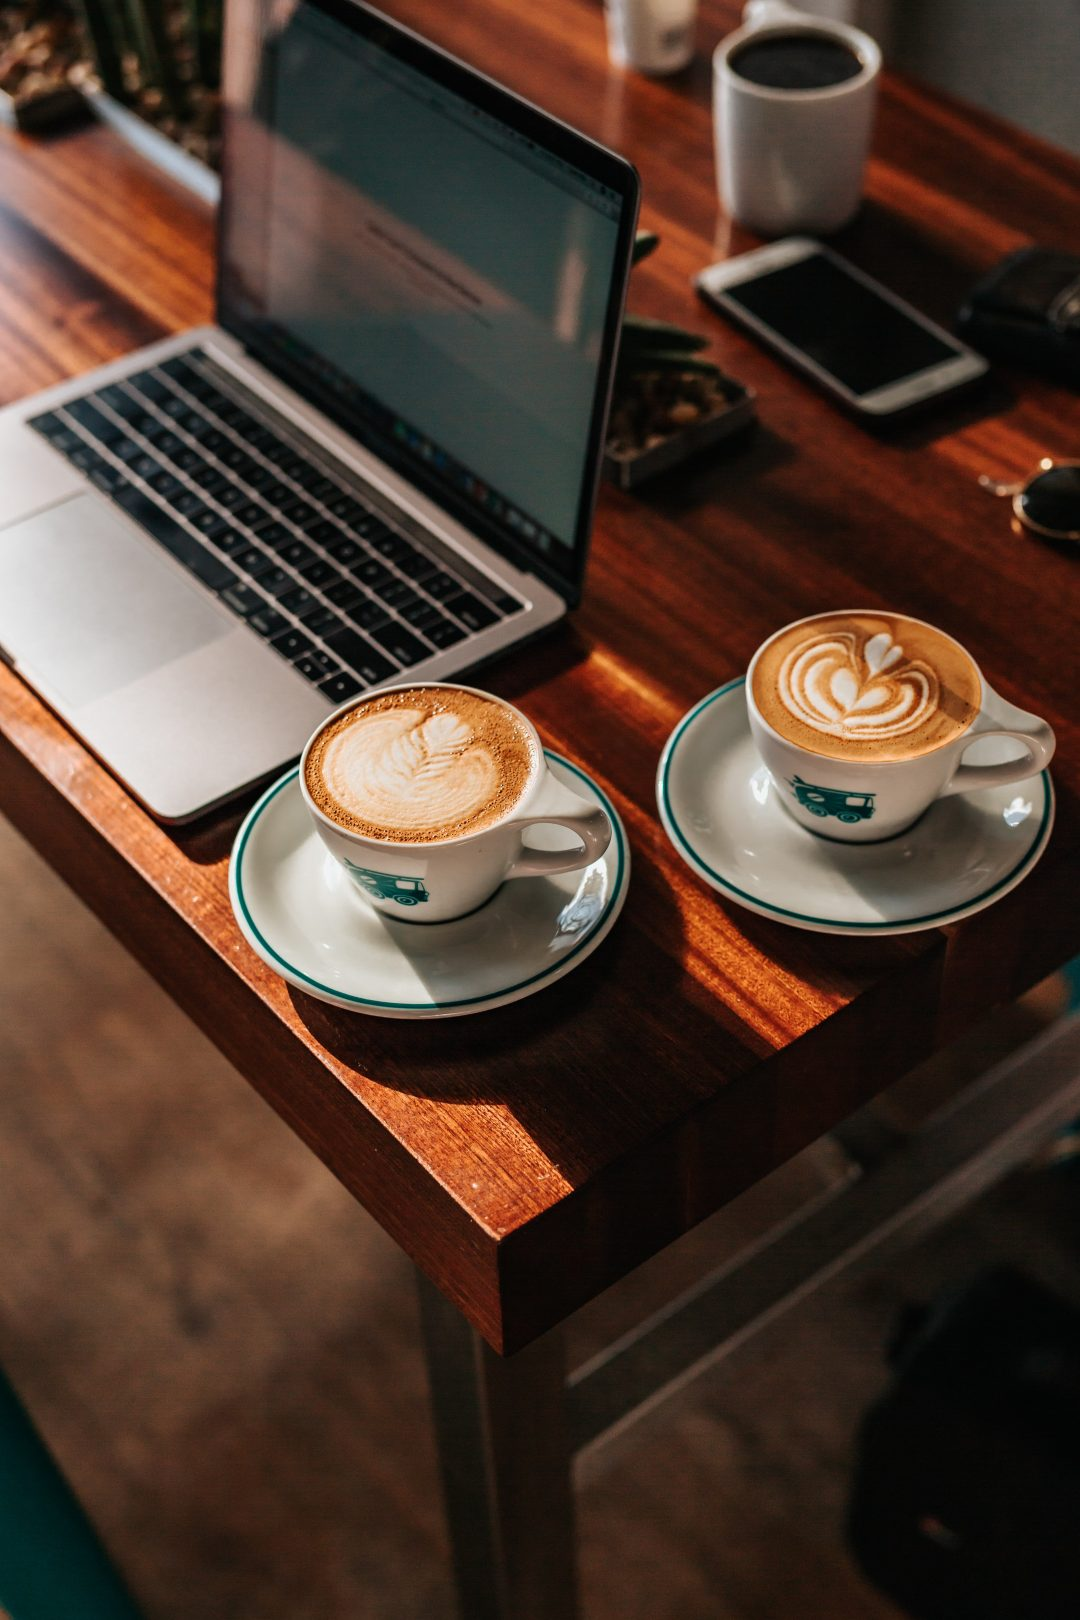 The 3 Major Advantages of Technology for the Modern Coffee Shop